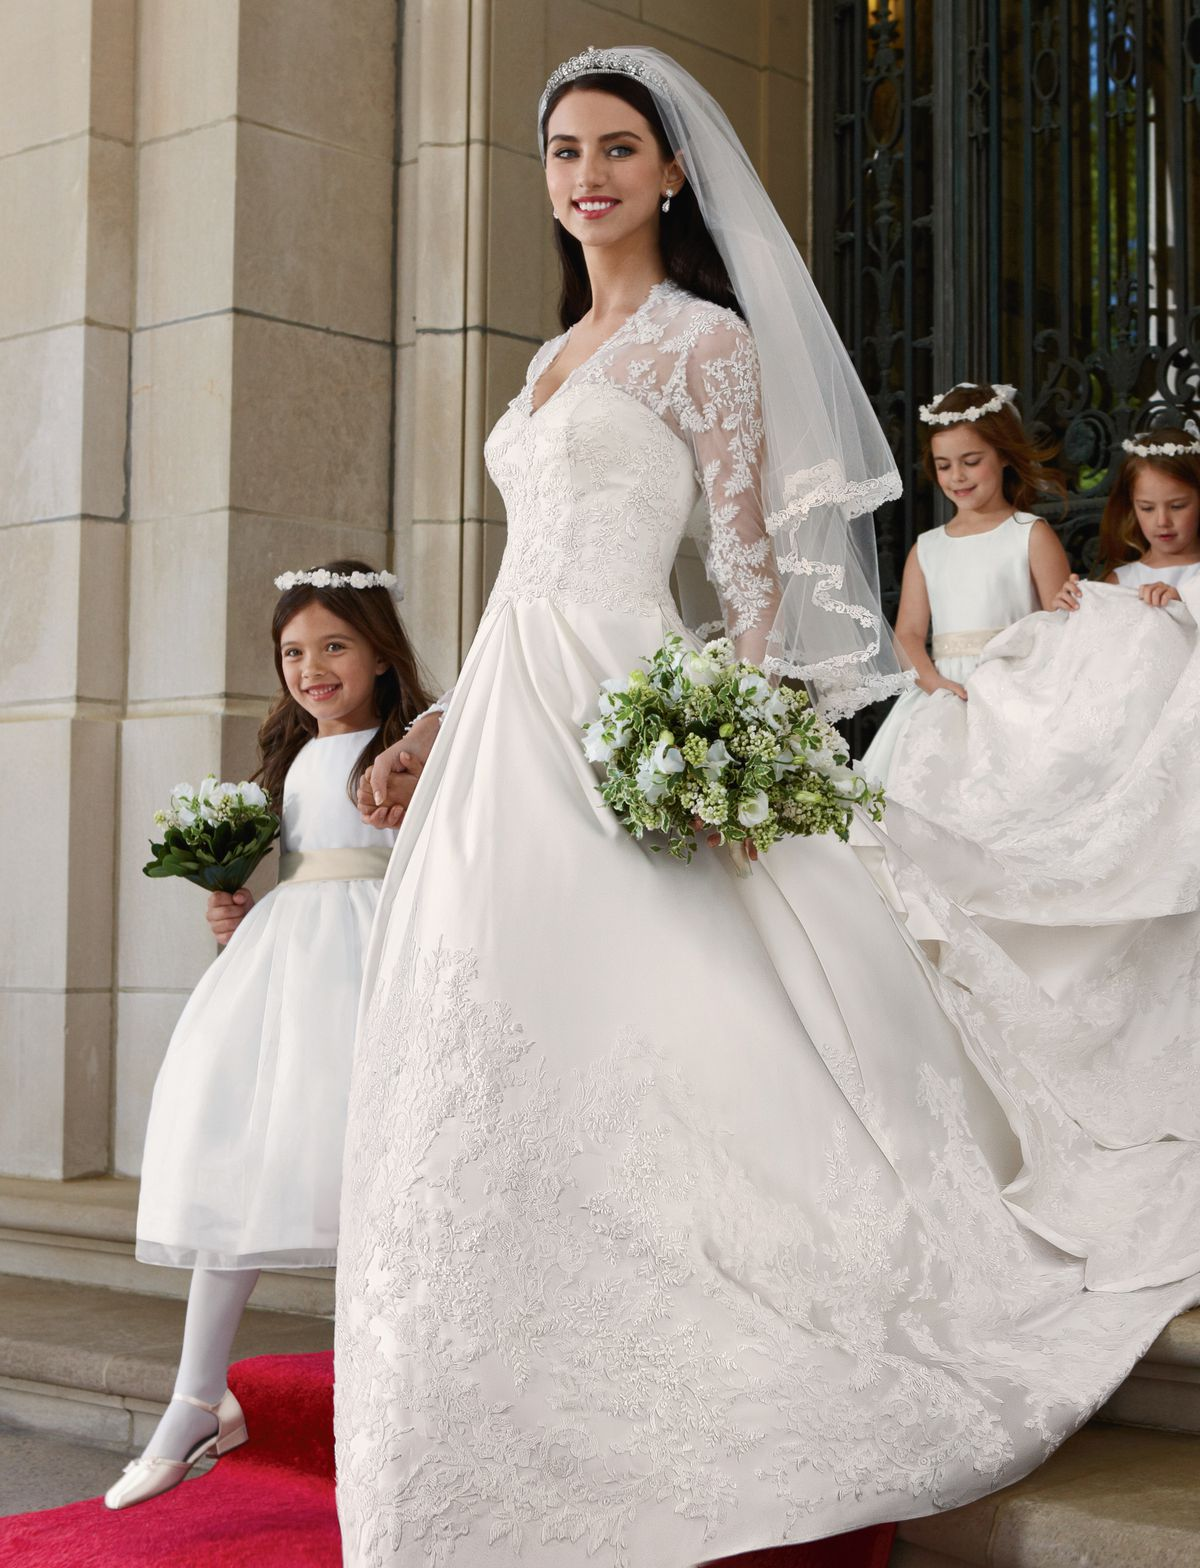 Kate Middletons Wedding Dresses.How Meghan Markle S Wedding Dress Will Influence What Brides